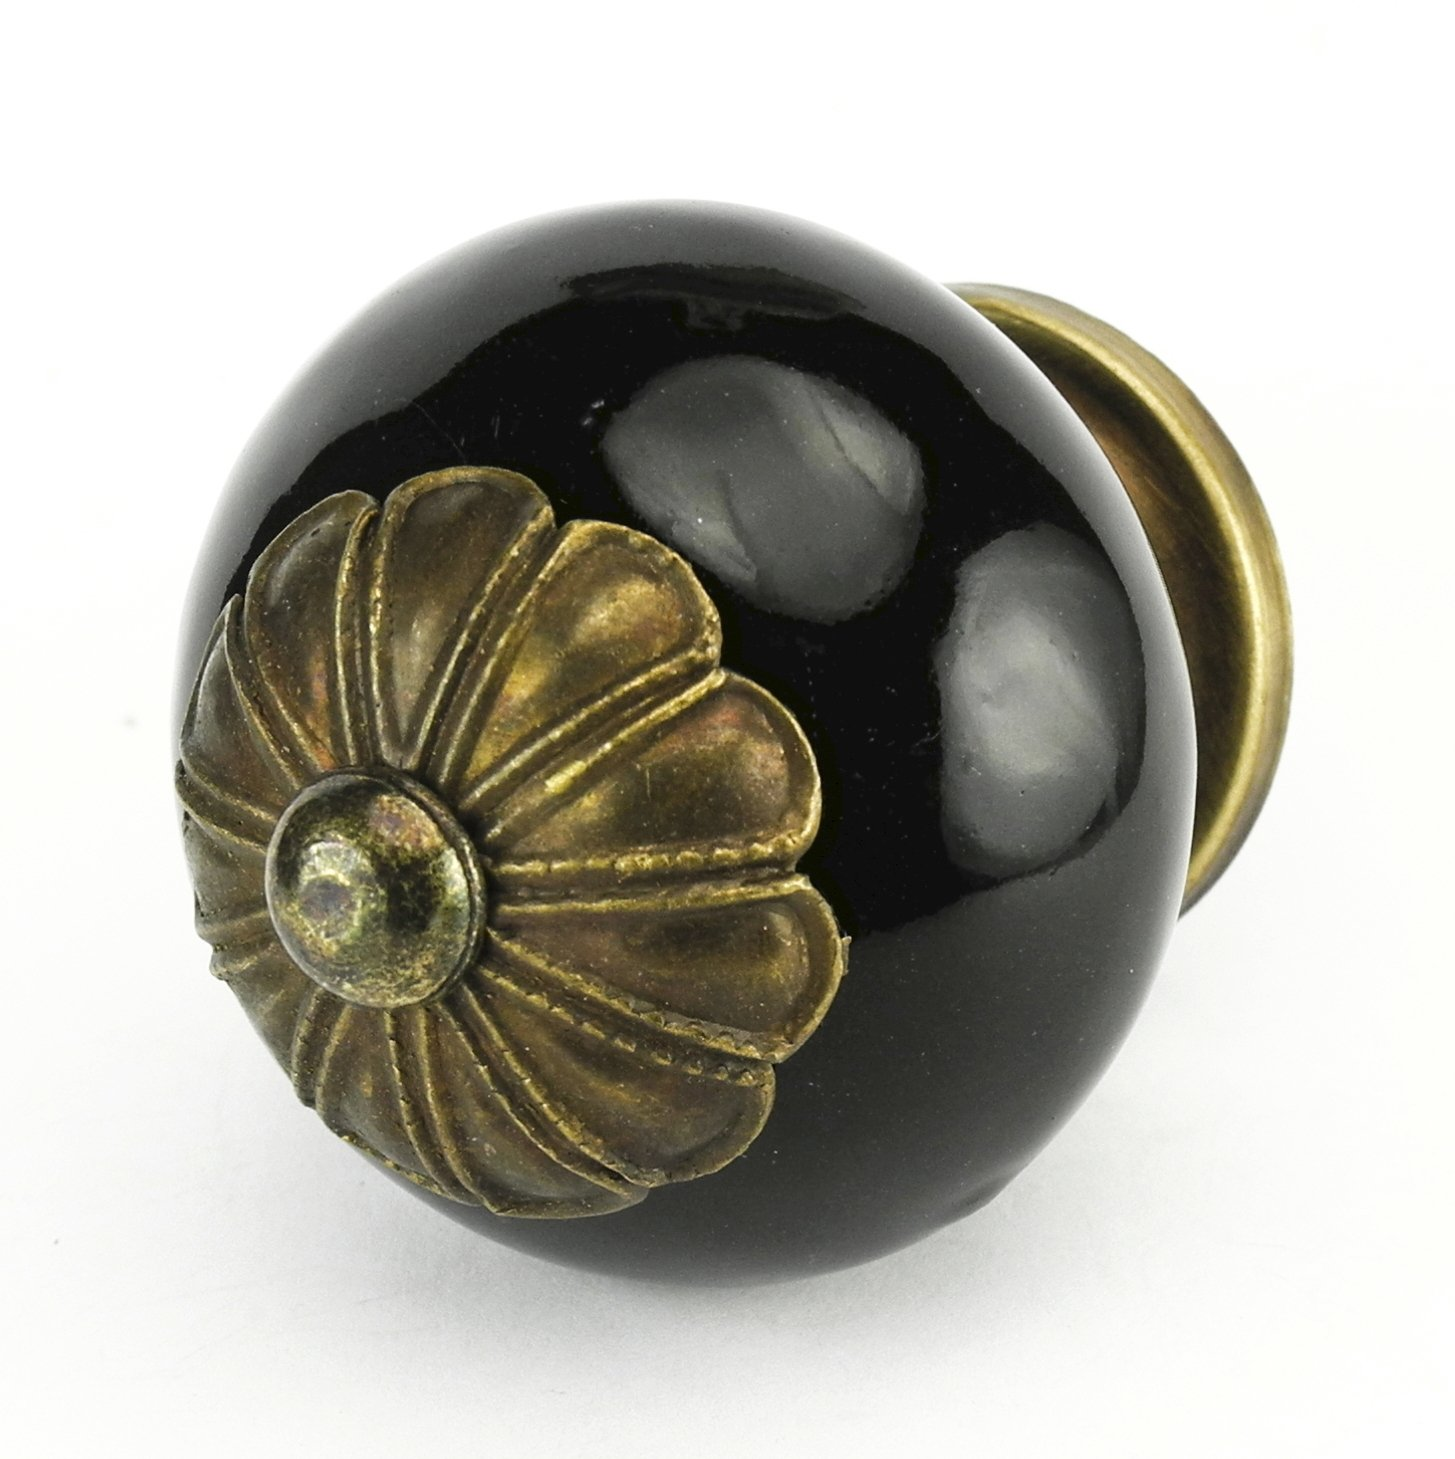 black ceramic cabinet knobs drawer pulls u0026 handles set2pc c56ff kitchen drawer pulls and handles hand glazed ceramic knobs with antique brass